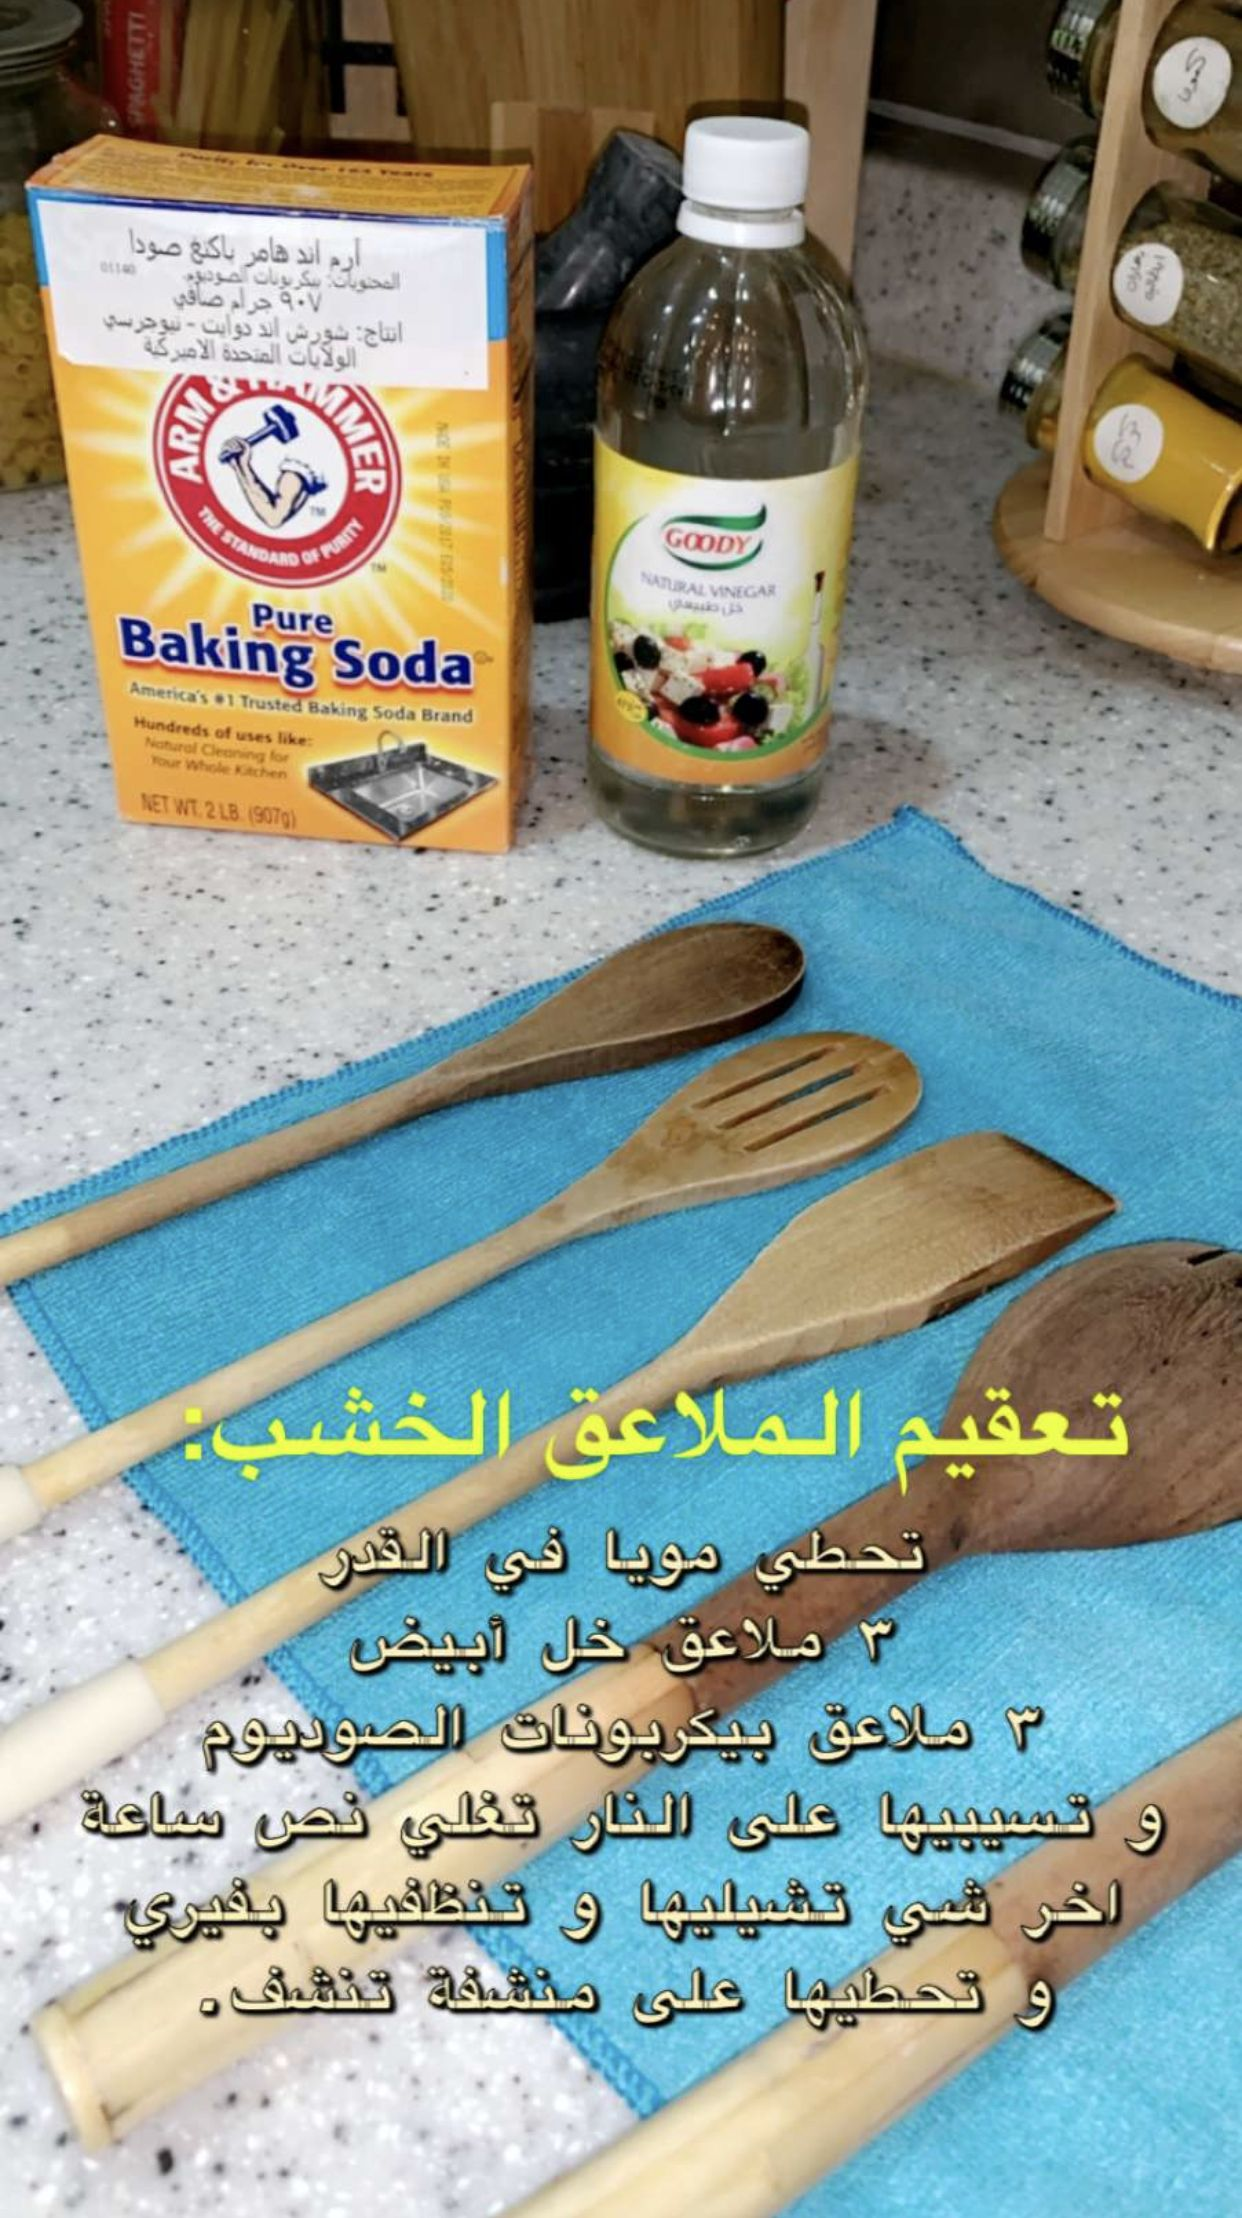 Pin By Maria X On التنظف Cleaning Diy Cleaning Hacks Diy Cleaning Products Cleaning Clothes